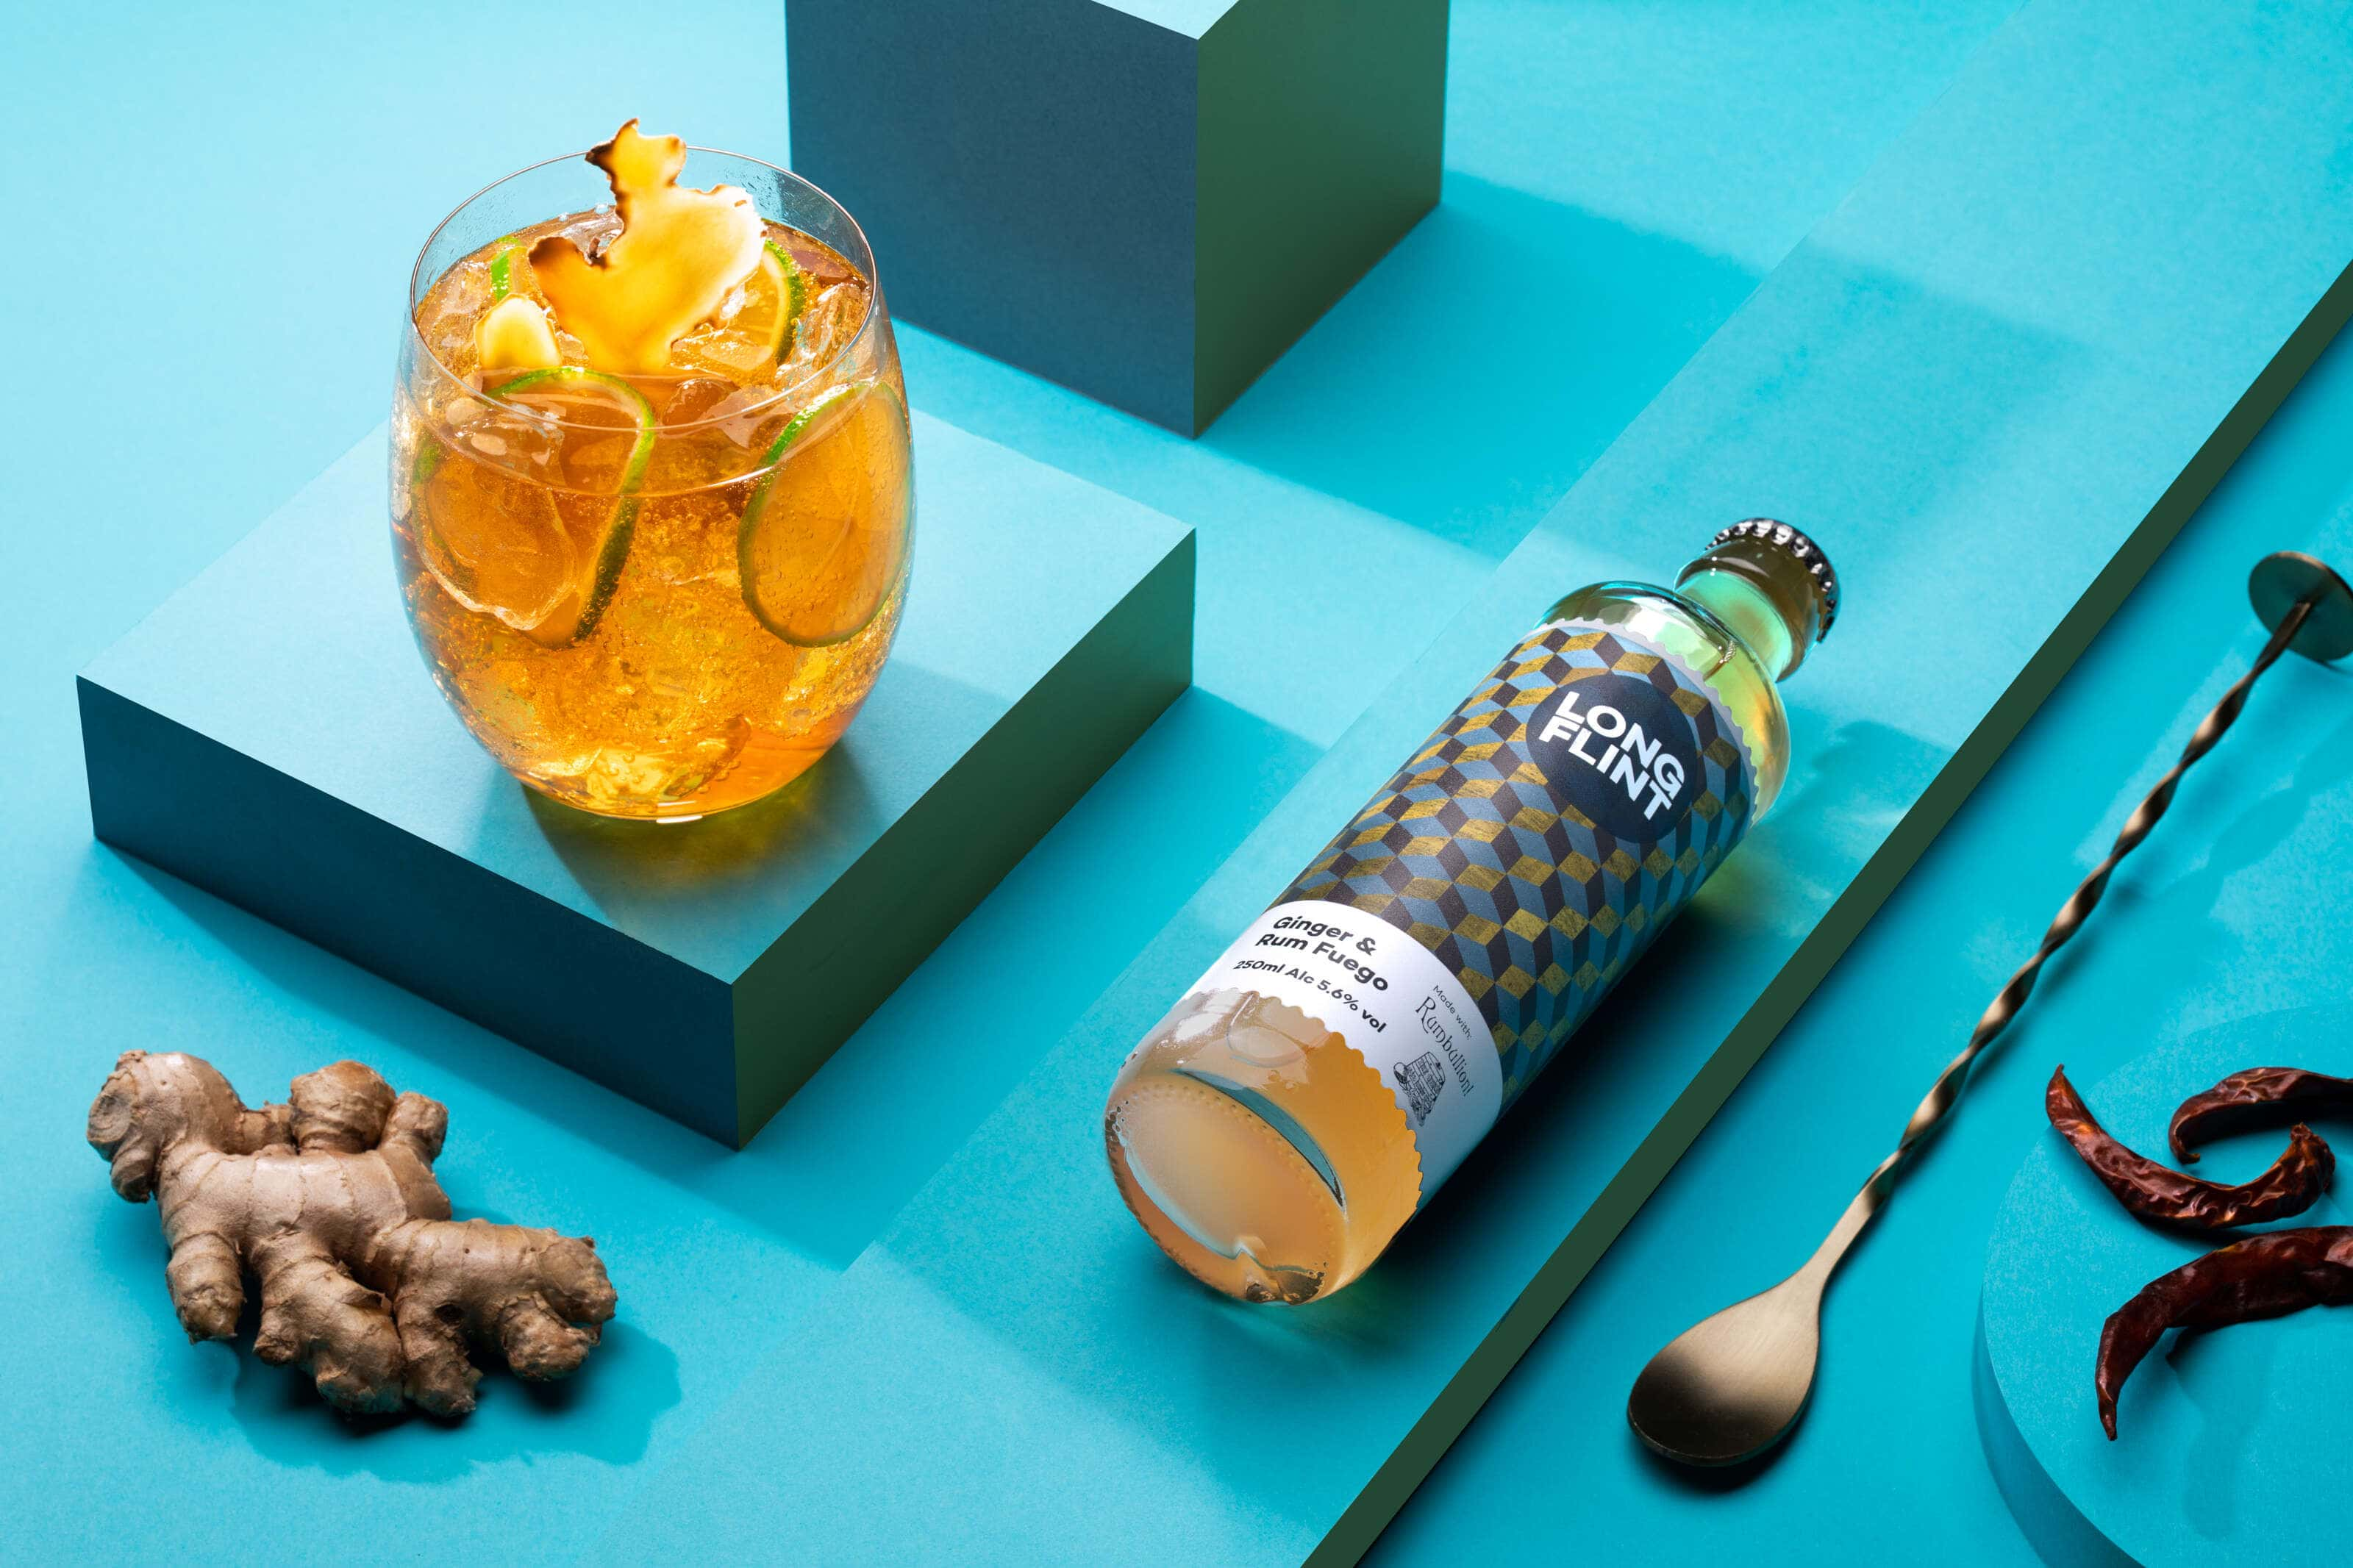 long-flint-rum-and-fuego-cocktail-in-a-pop-art-style